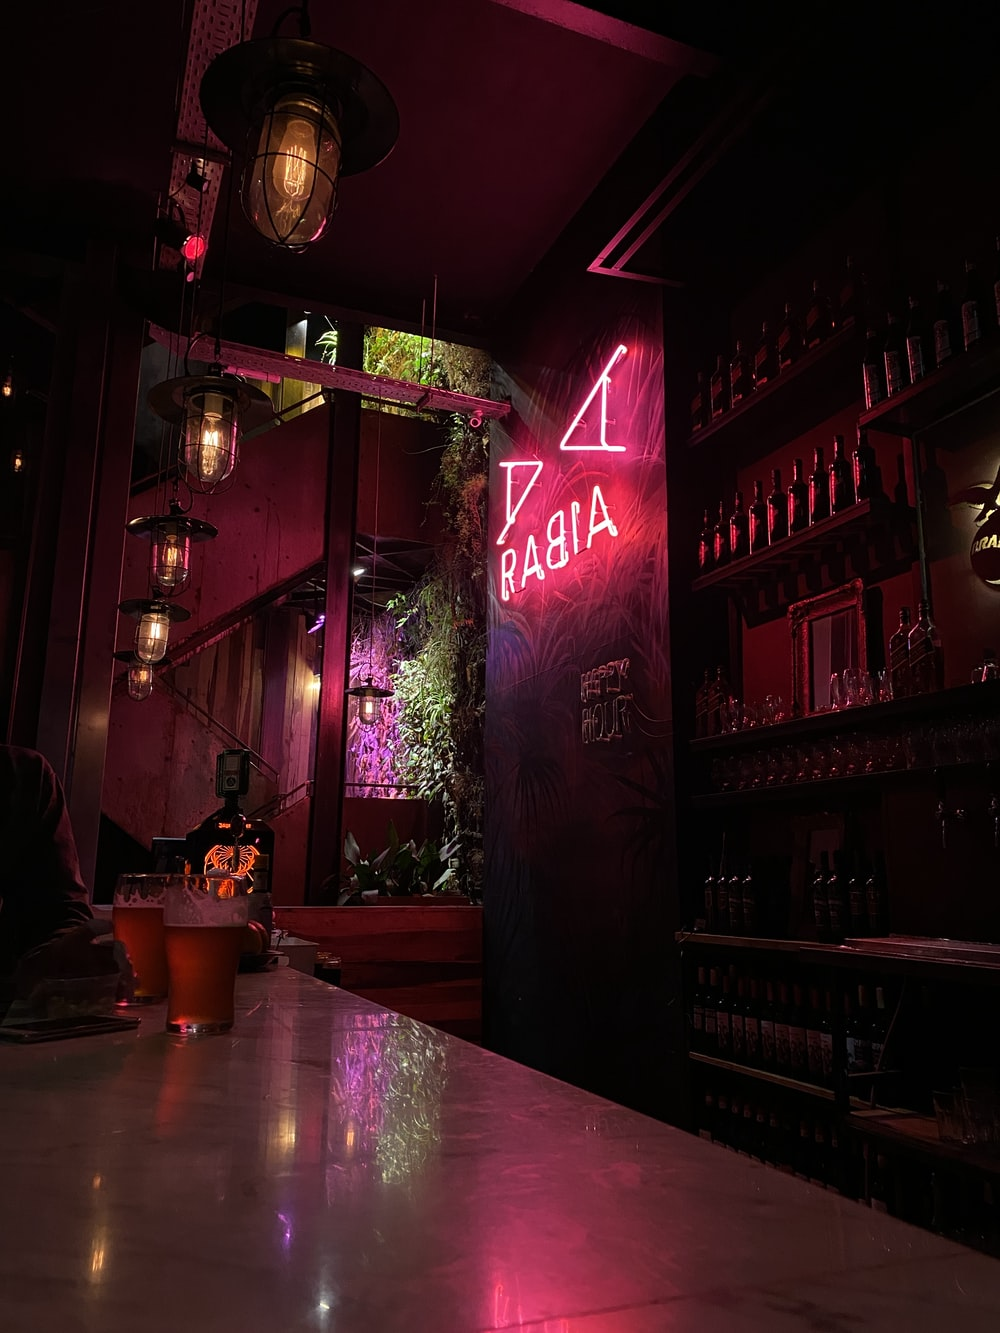 pink Babia neon sign